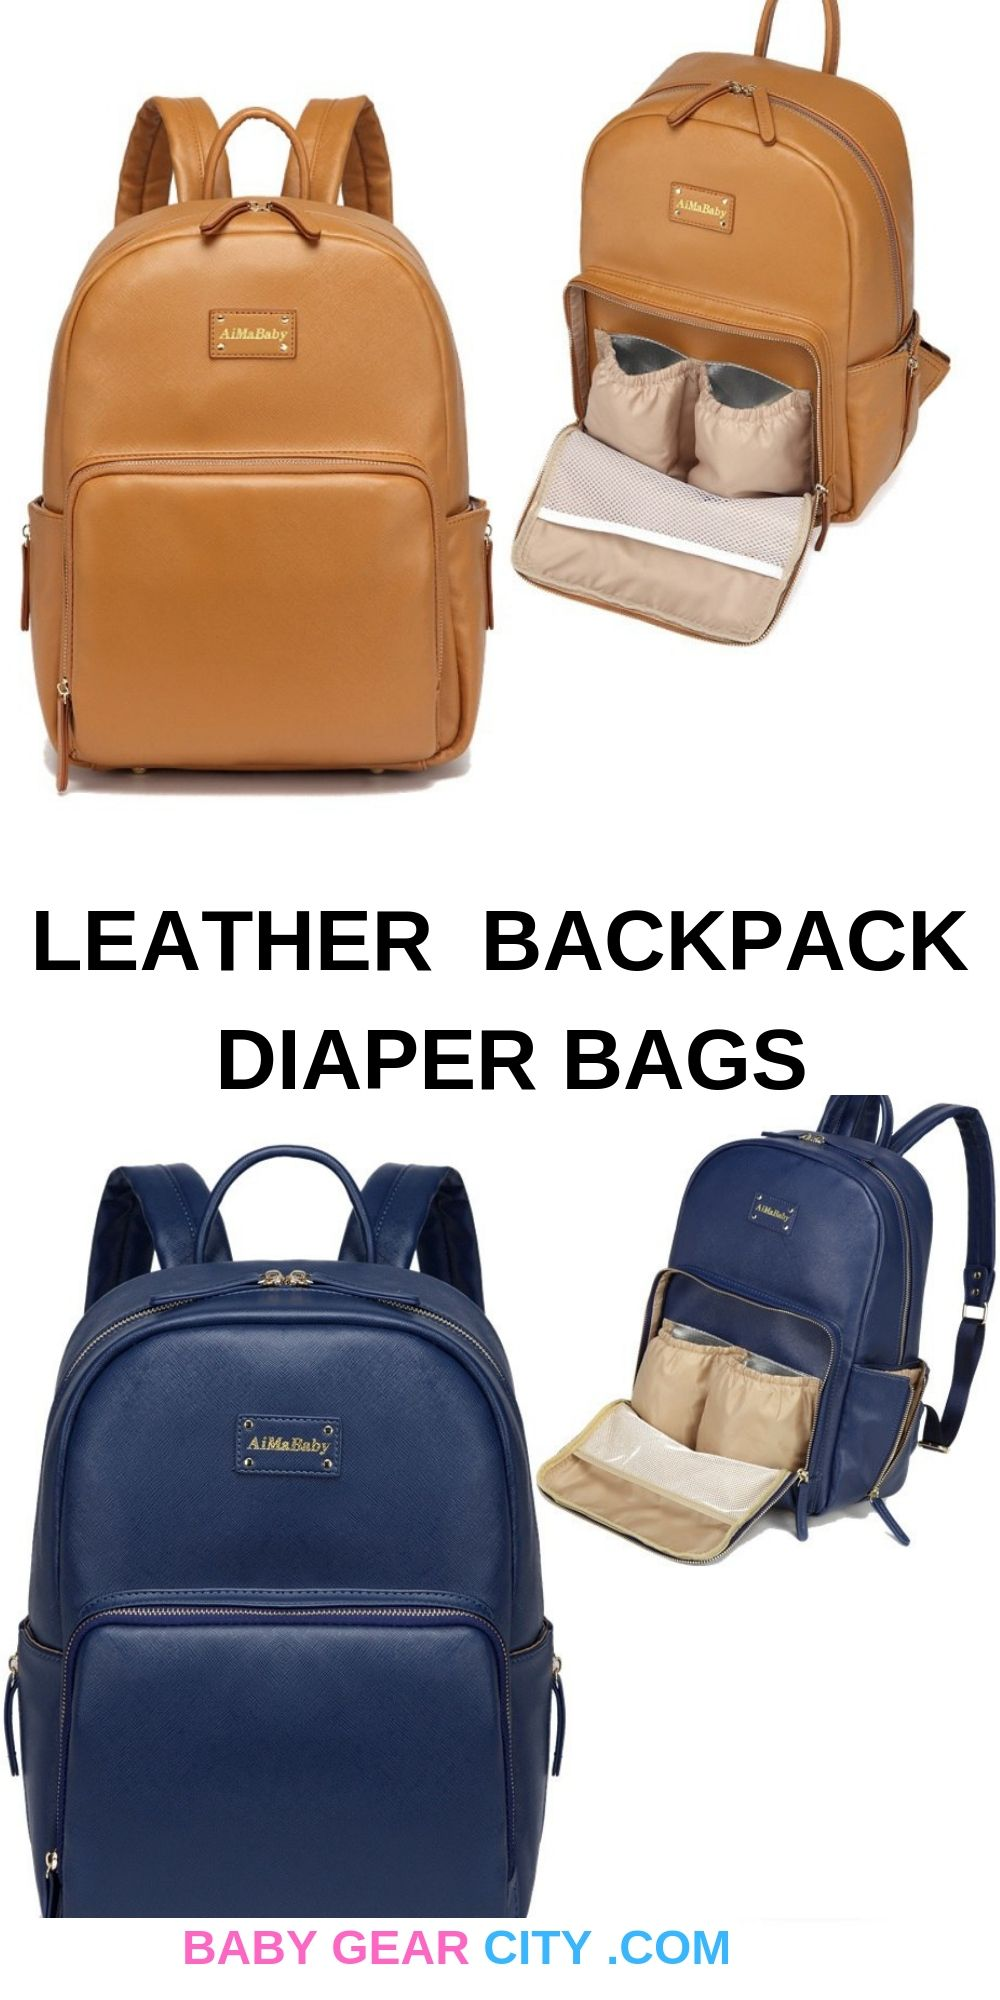 Leather Diaper Bags Backpack Baby Diapering Baby Gear City Com Diaper Bag Backpack Leather Diaper Bag Backpack Leather Diaper Bags